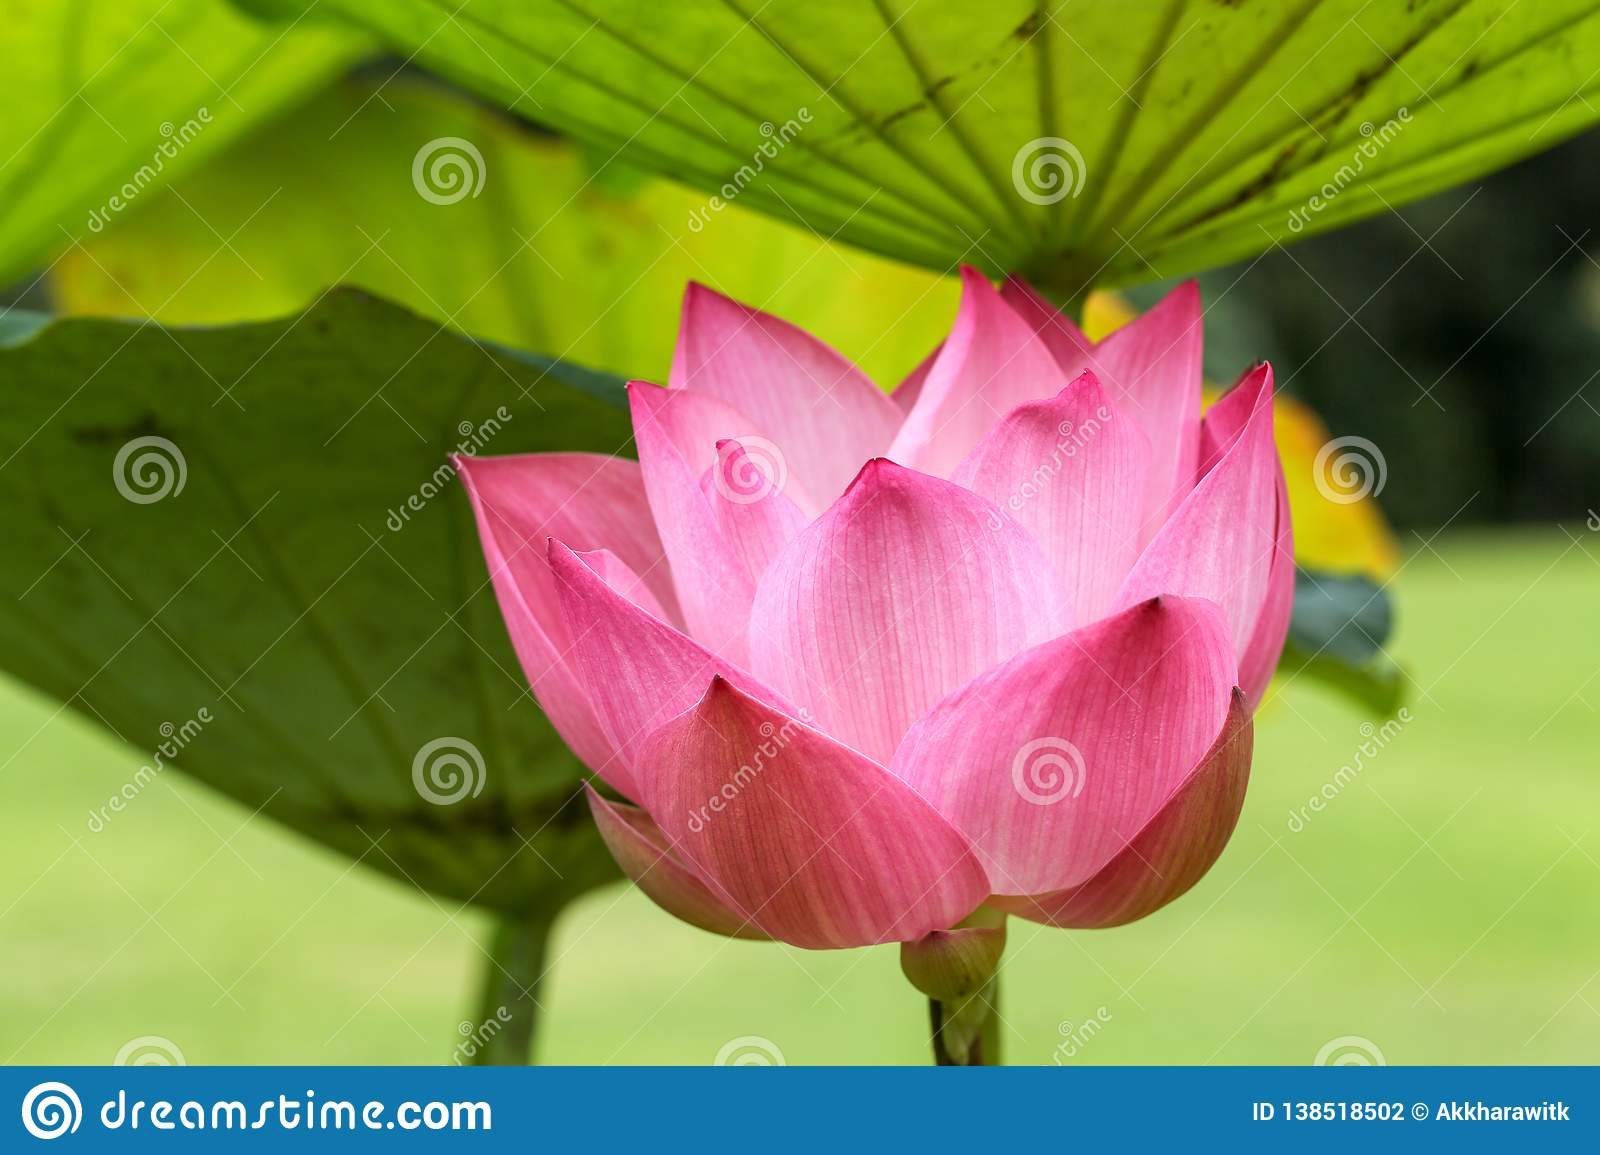 Pink Lotus Flower Close Up And Leaf Grown In The Natural Pond Stock